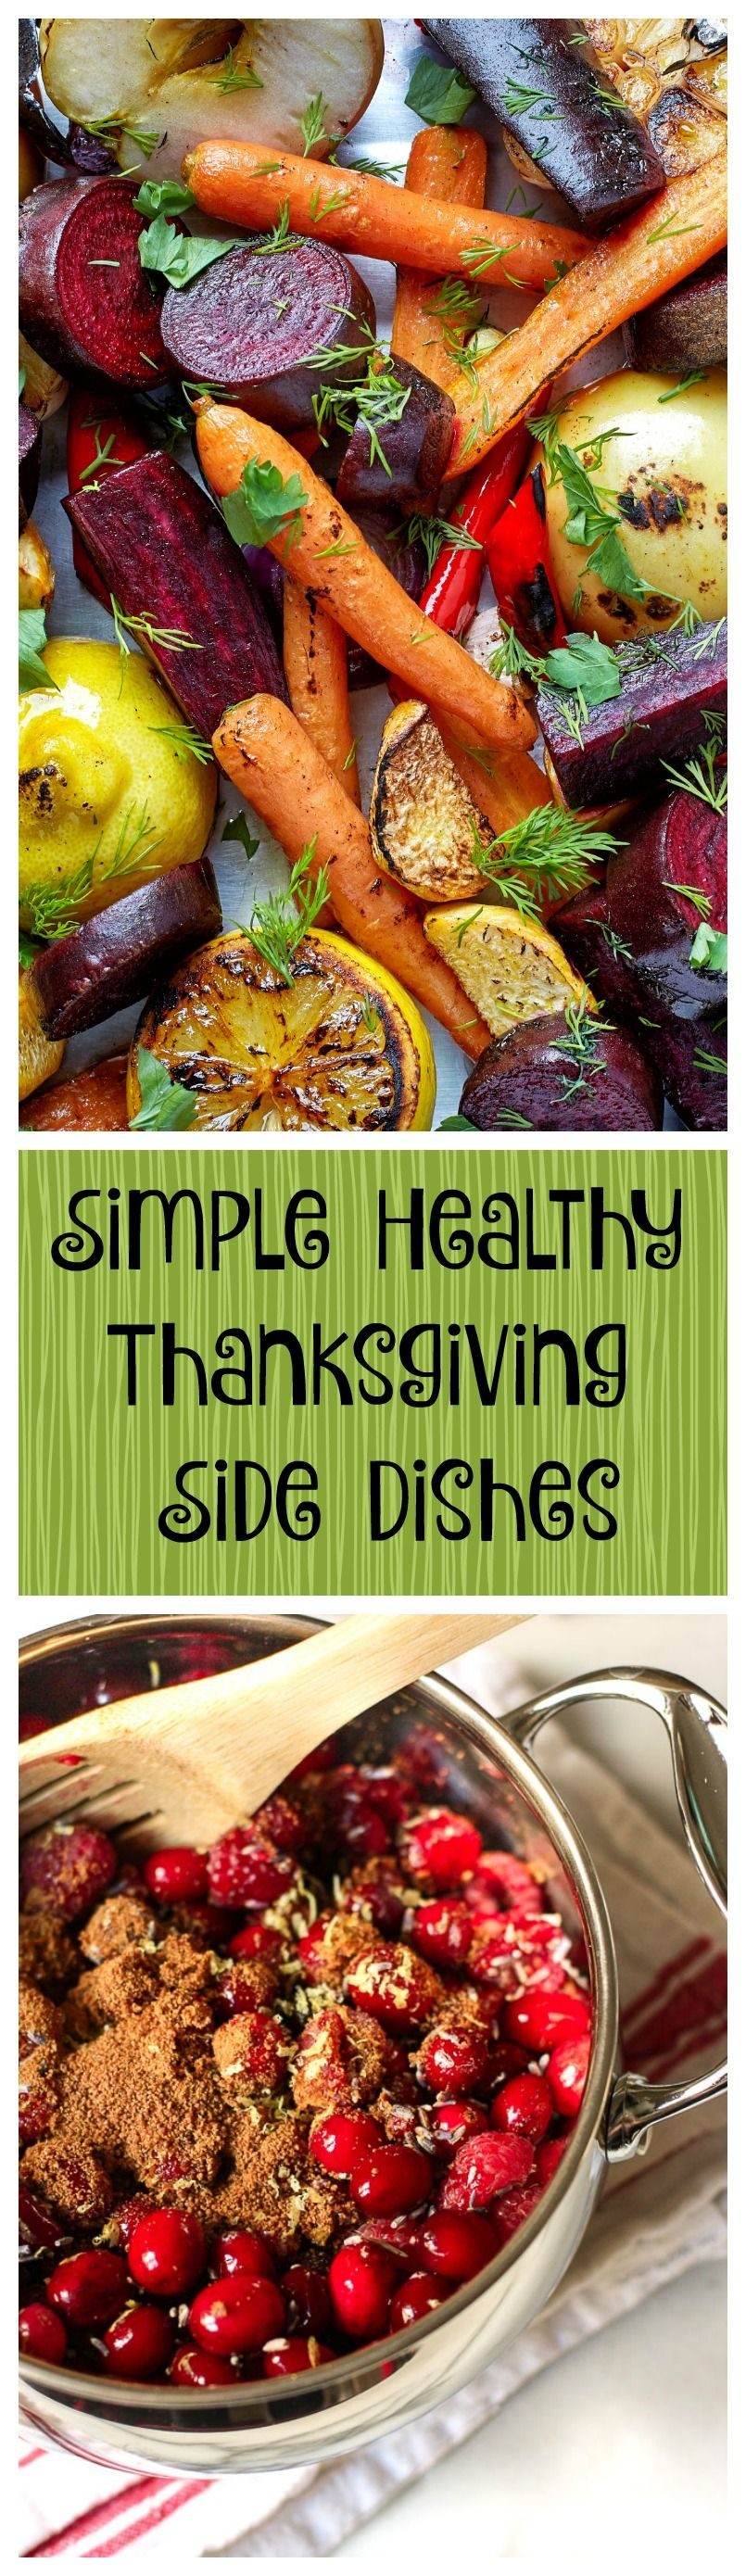 Simple Healthy Thanksgiving Side Dishes